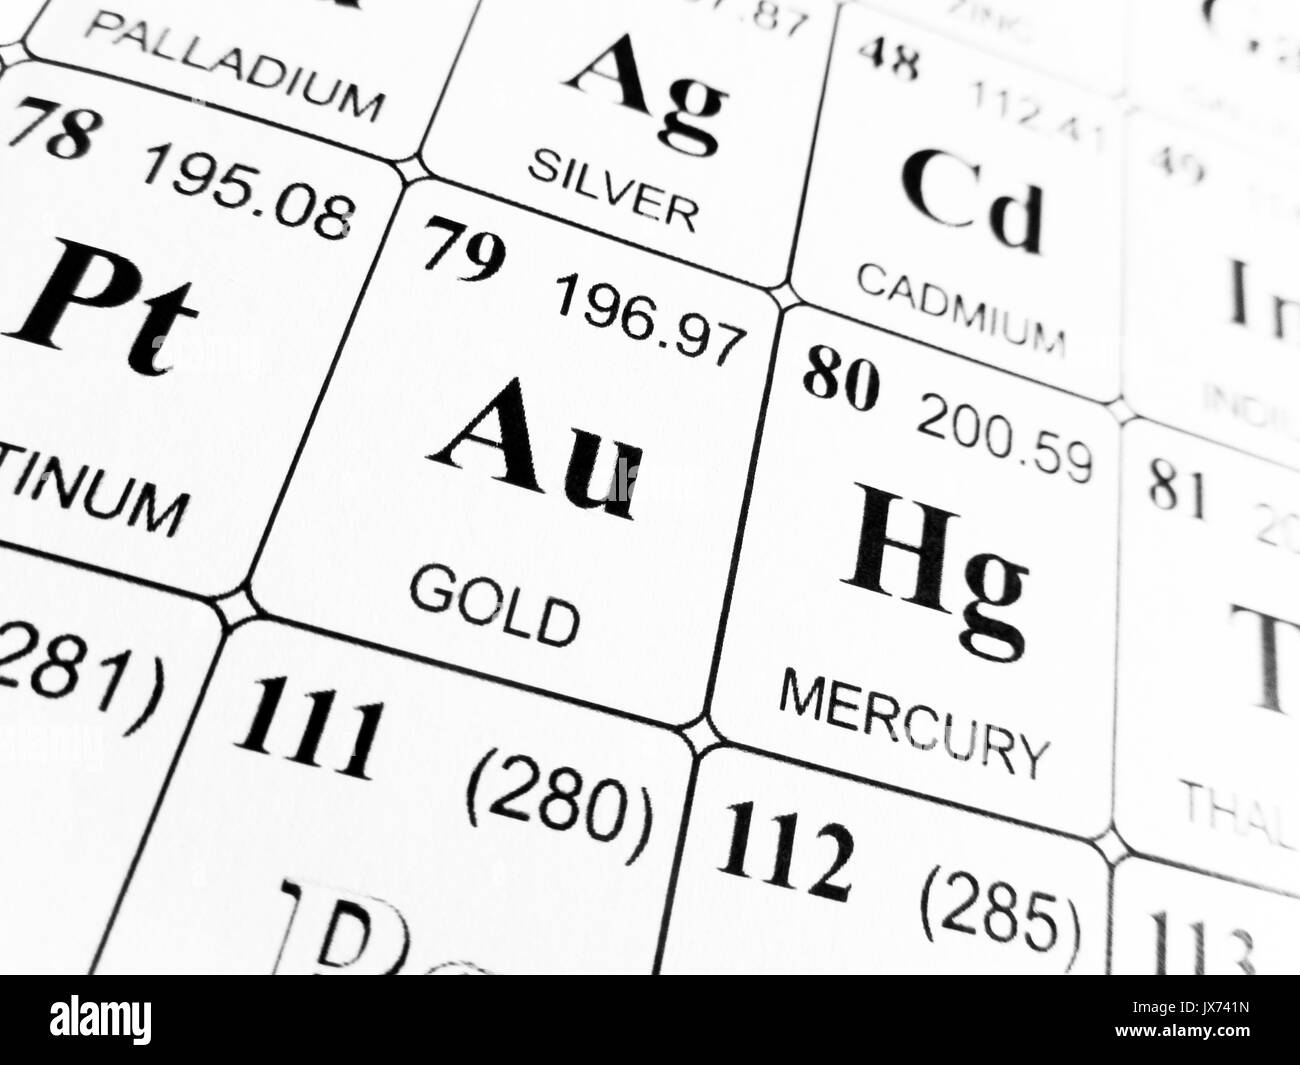 Gold on the periodic table of the elements stock photo royalty free gold on the periodic table of the elements urtaz Image collections